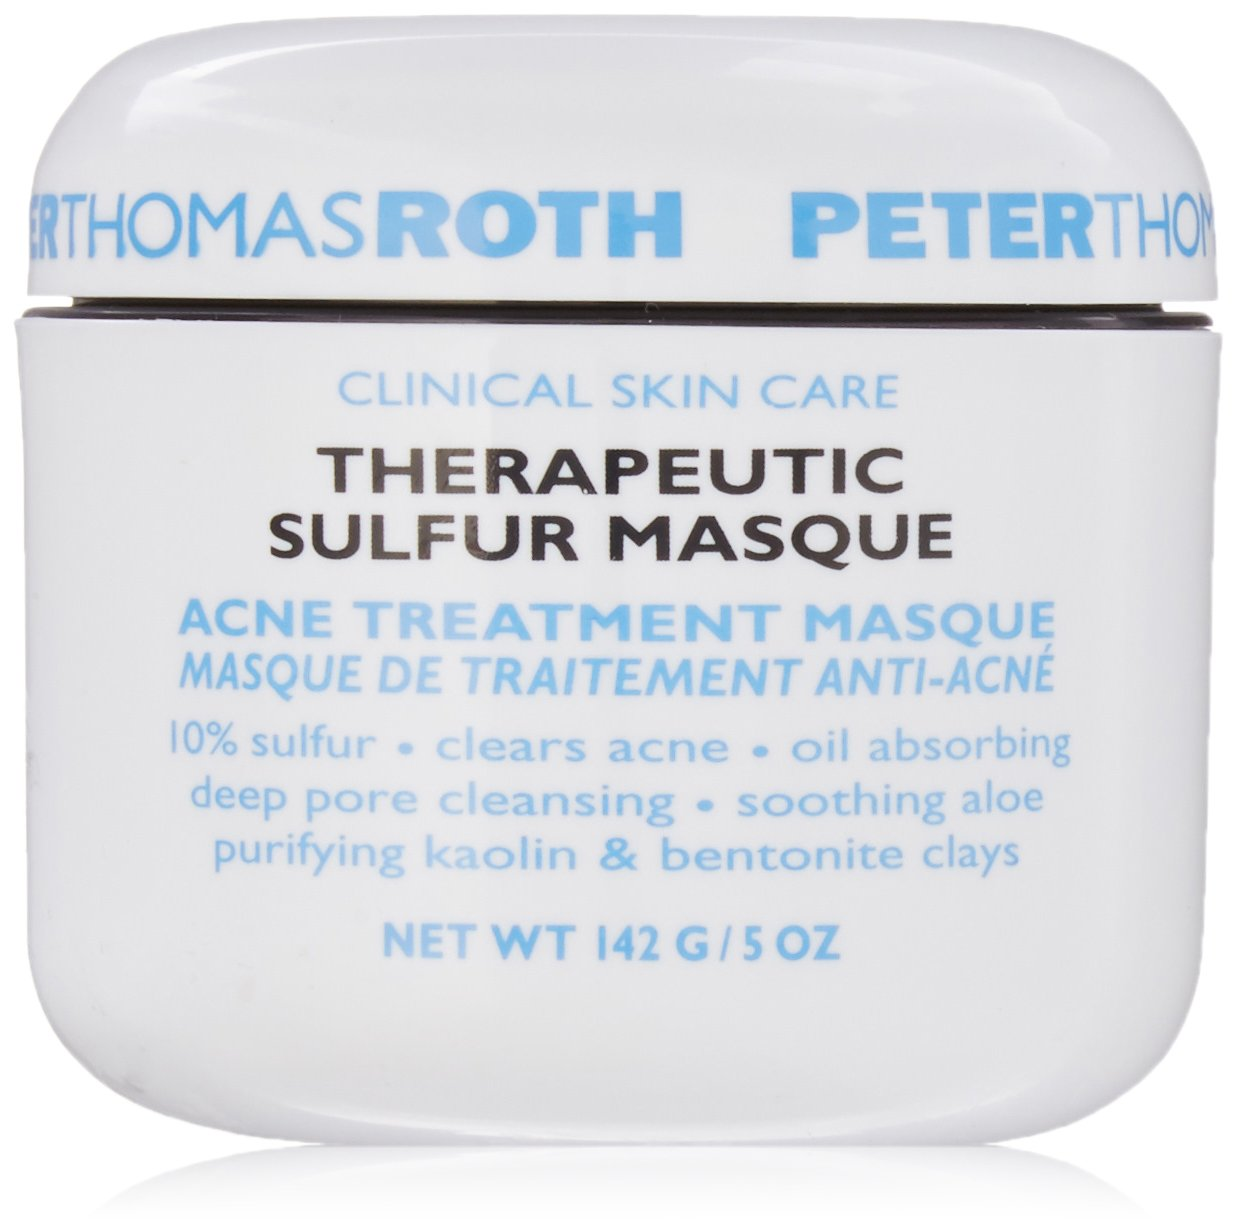 Peter Thomas Roth Theraputic Sulfur Masque, 5.0 Ounce 670367014028